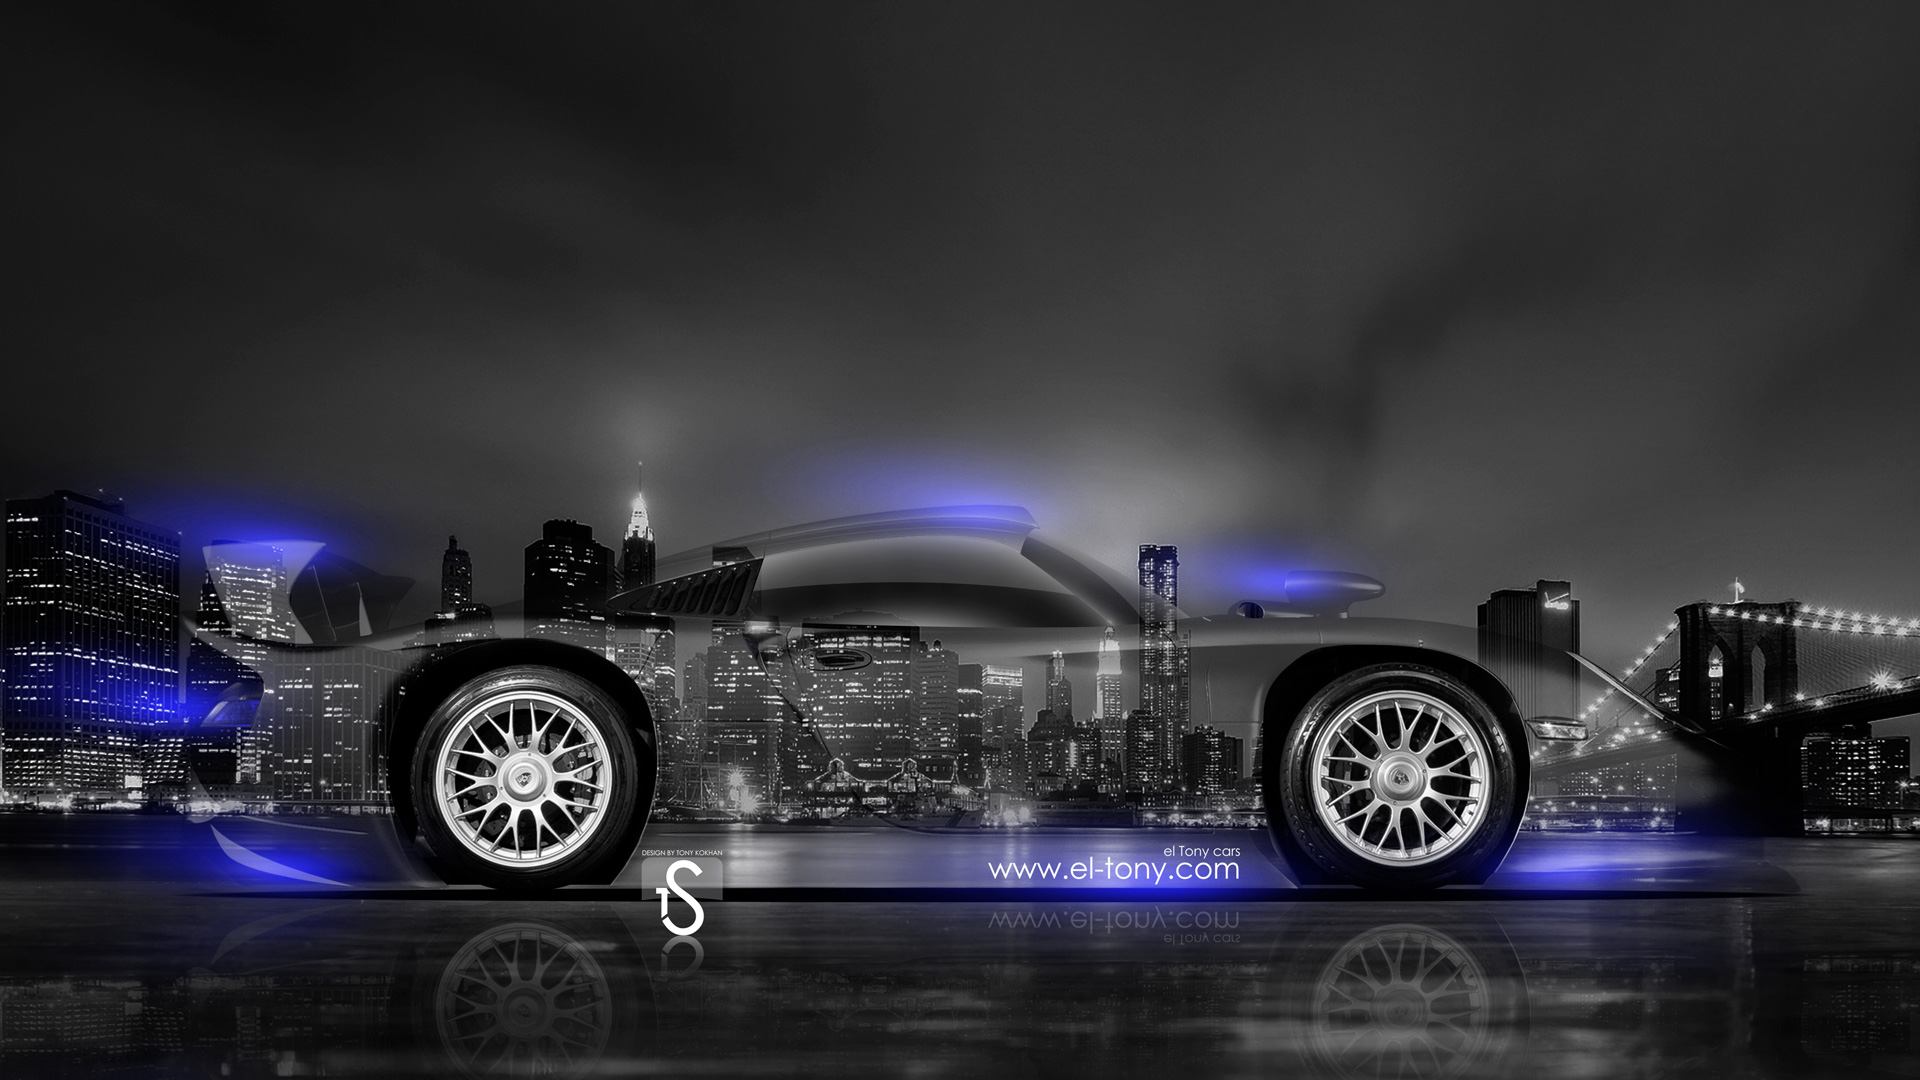 Captivating Porsche 9 Gt1 Crystal City Car